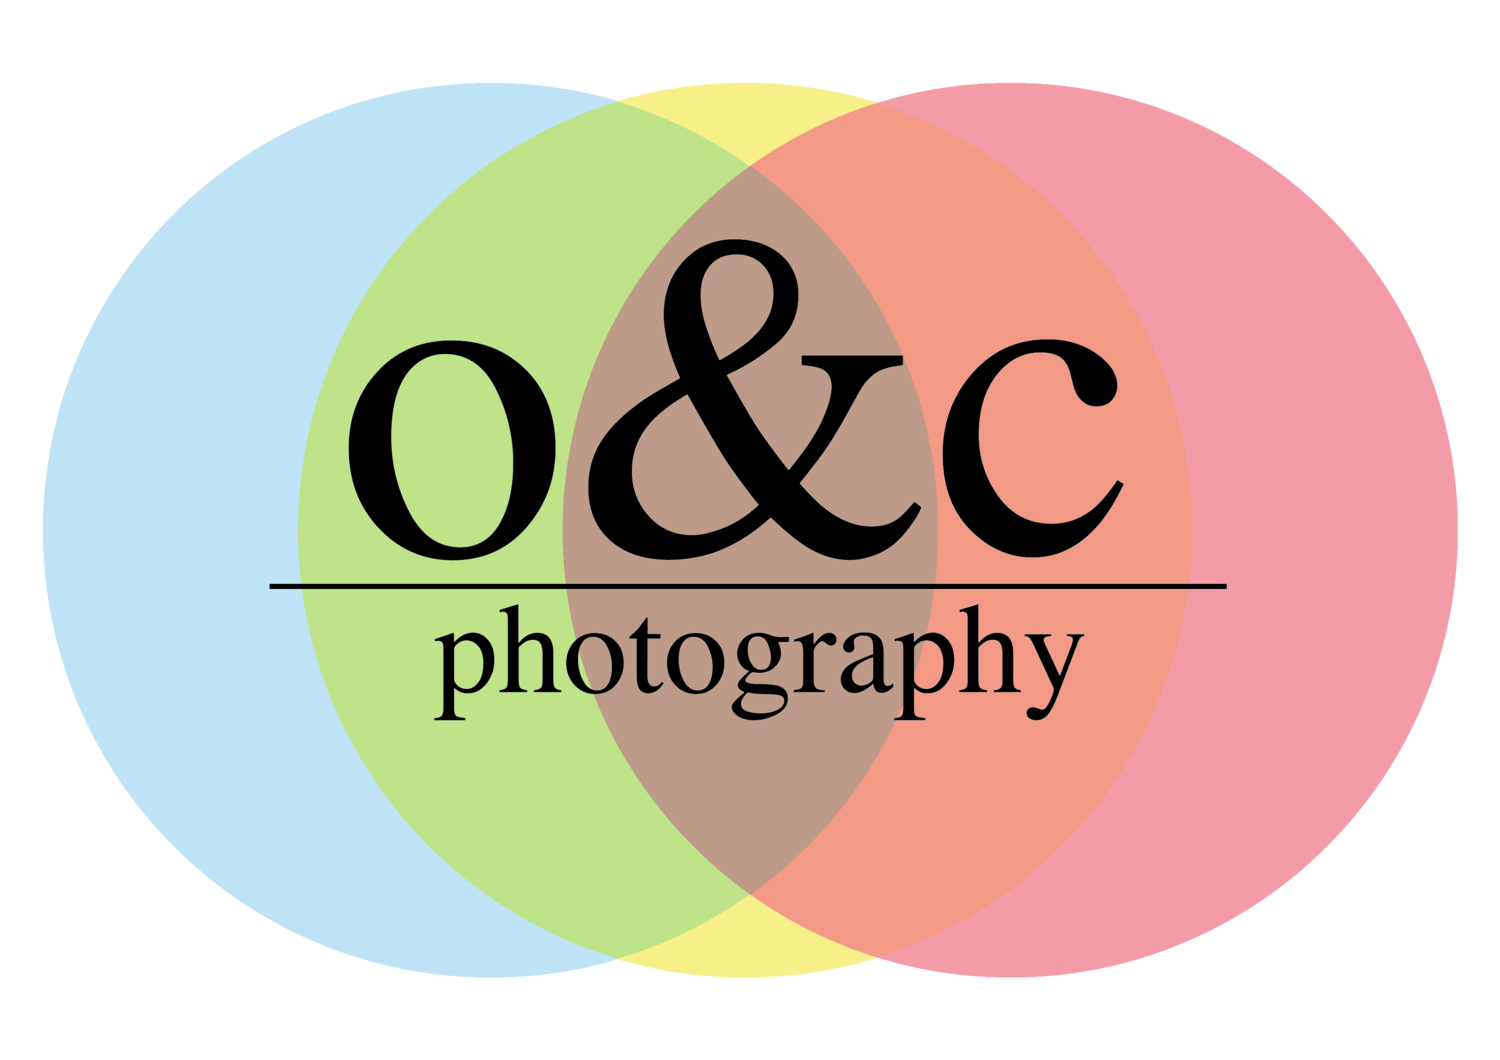 o&c Photography - organic & alternative photography